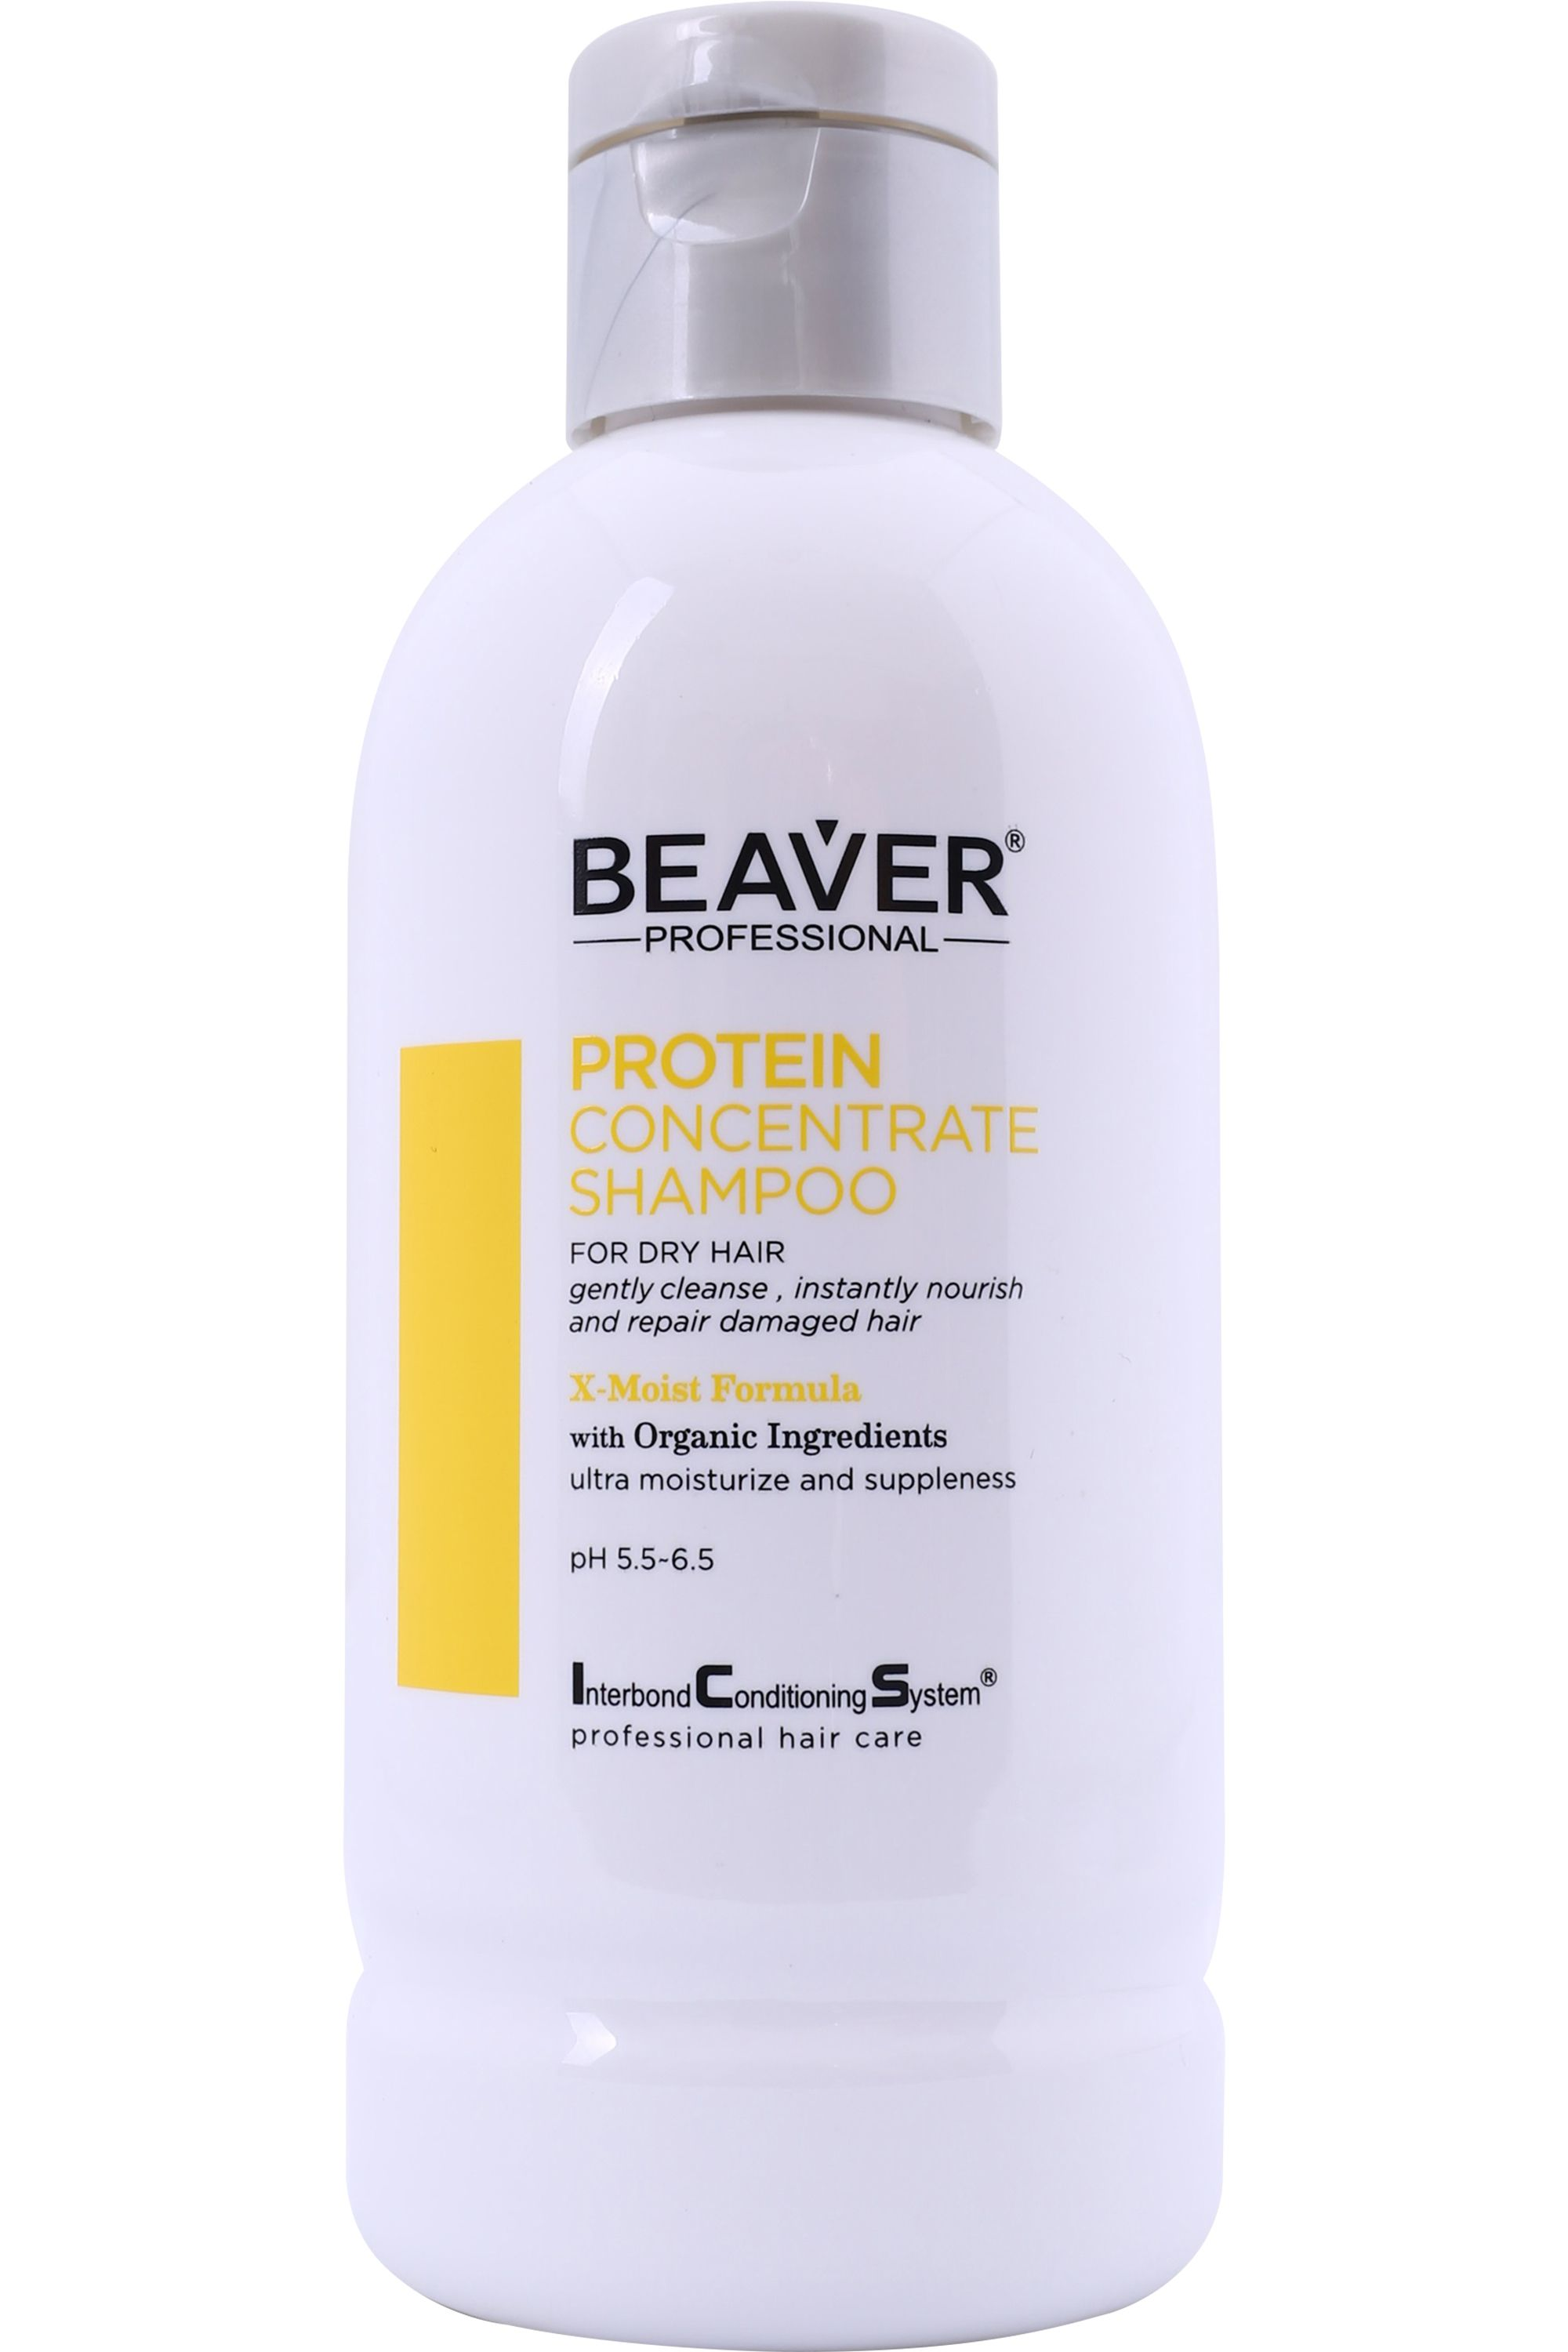 Blissim : Beaver Professional - Shampoing Protein Concentrate - Shampoing Protein Concentrate